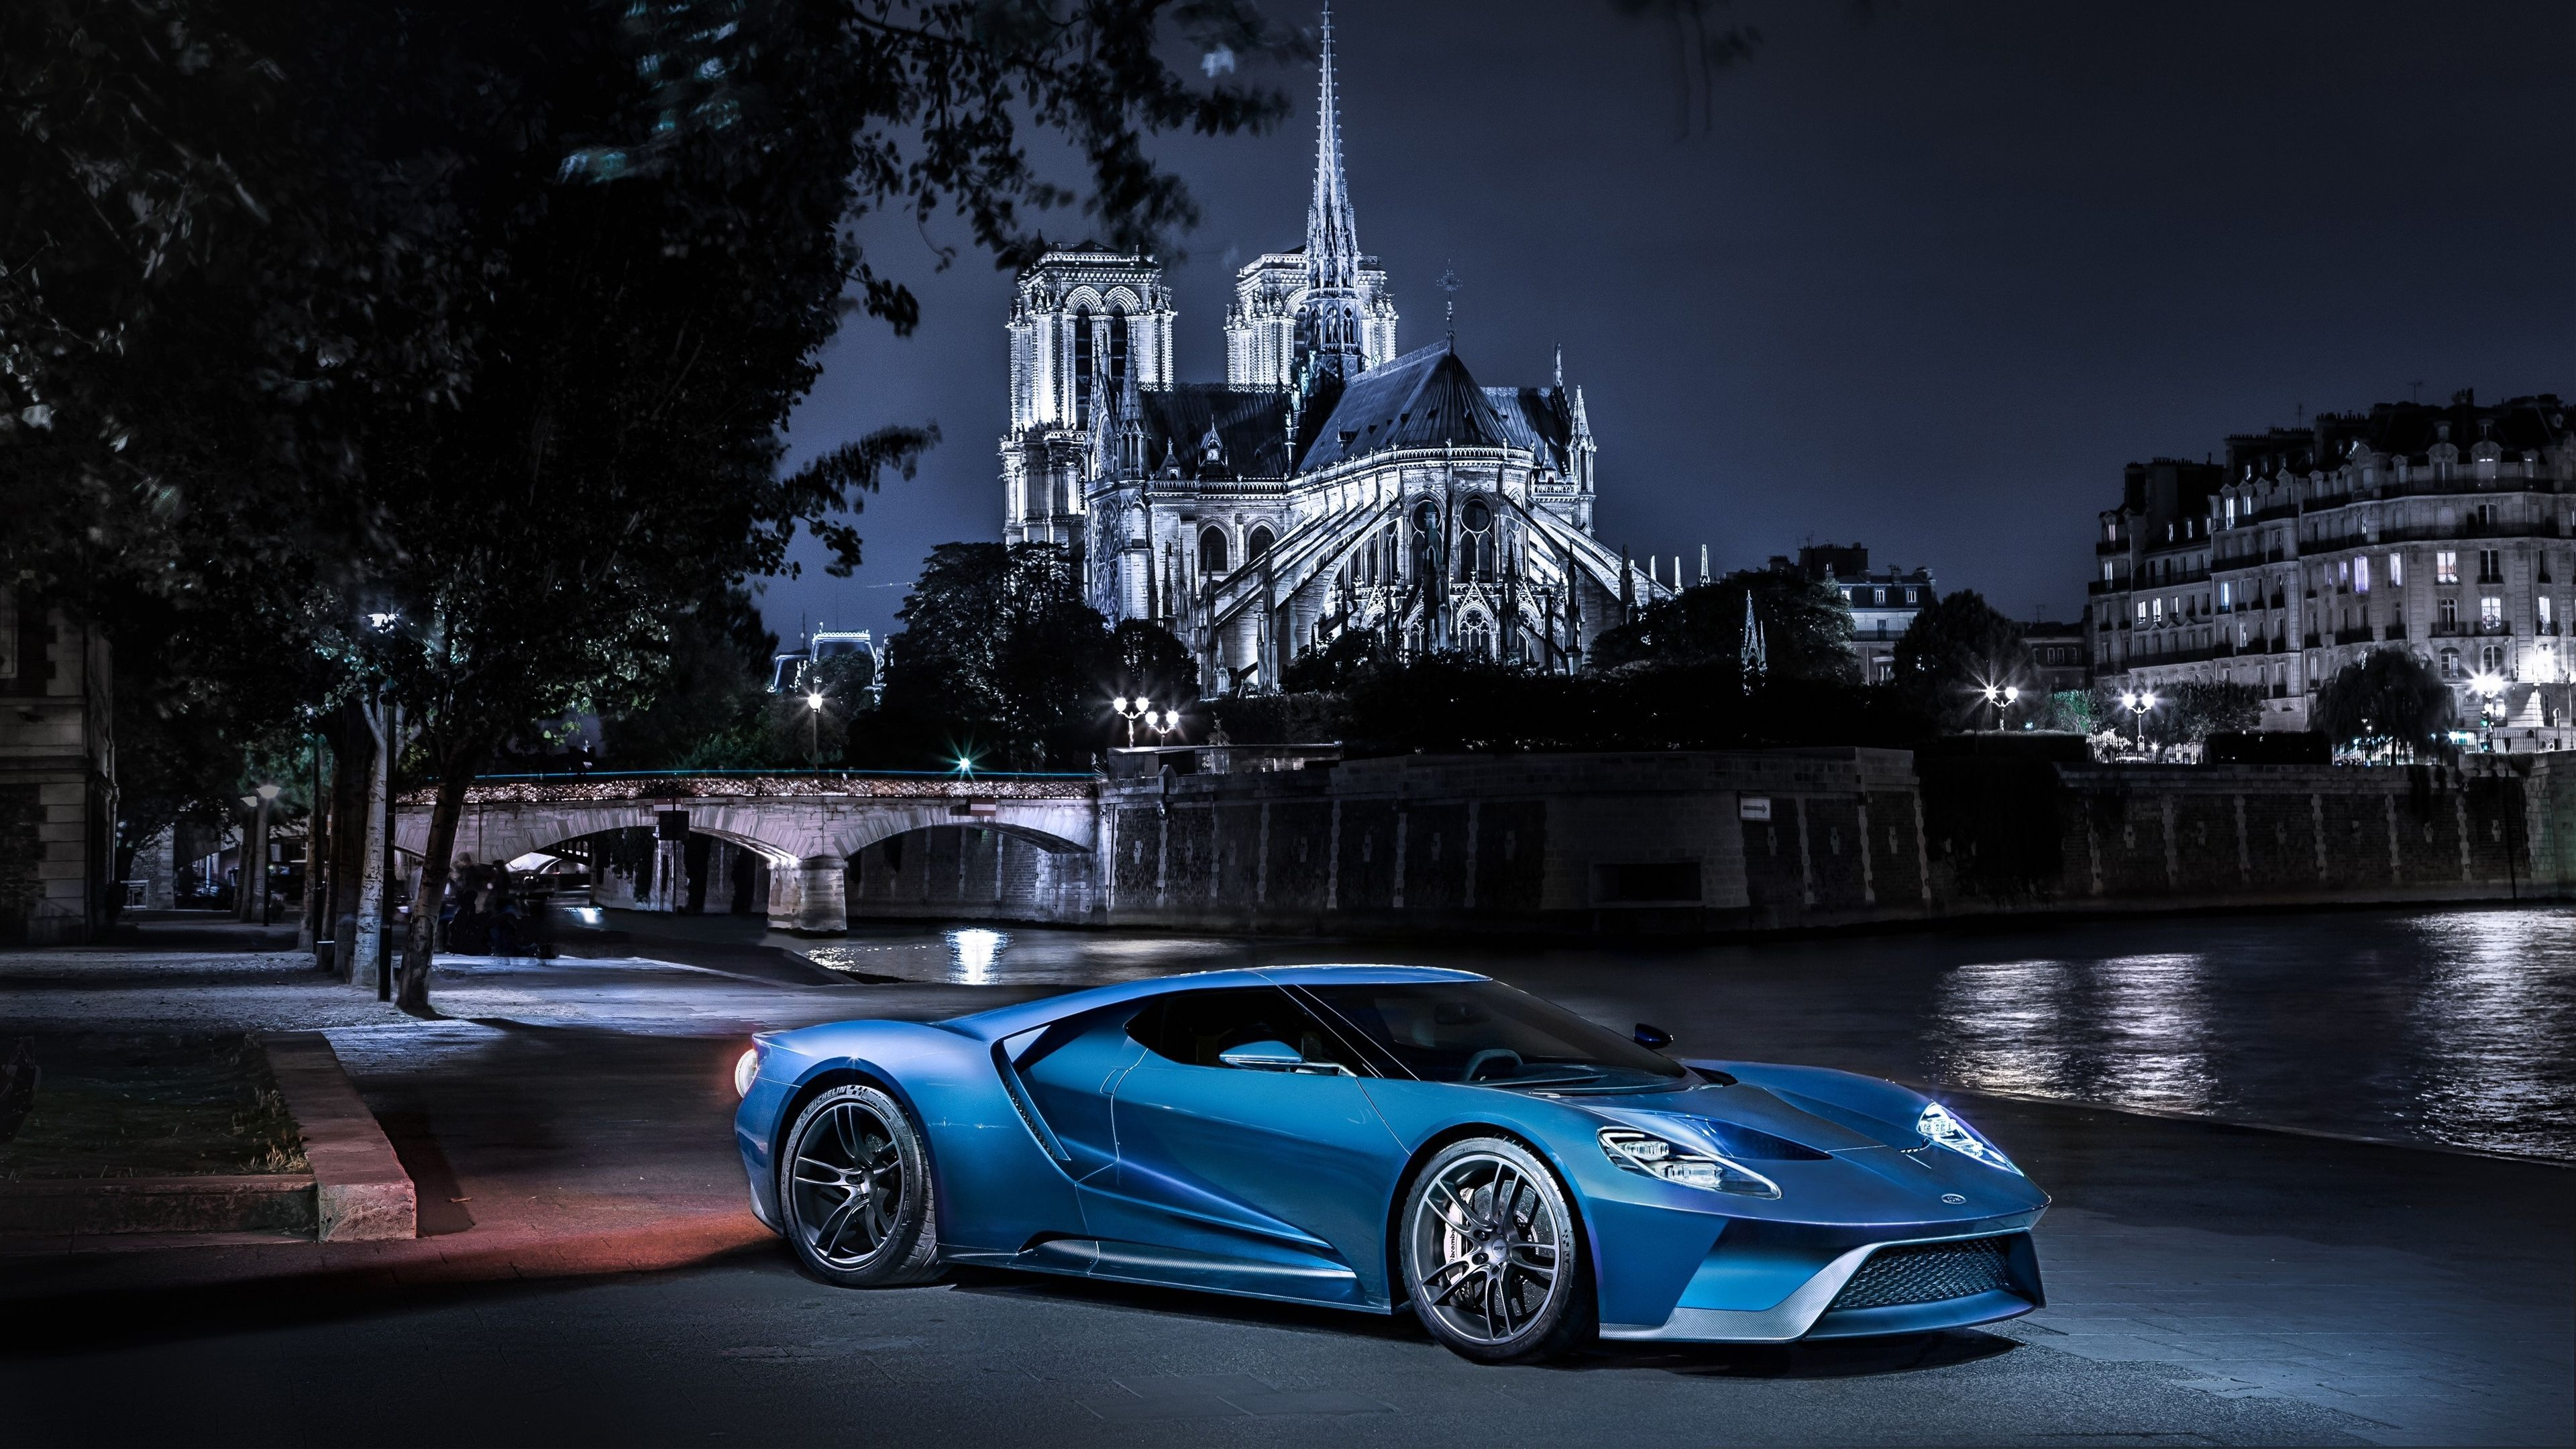 10 Most Popular Super Cars Wallpapers Hd Full Hd 1080p For Pc Desktop Hd Wallpapers Of Cars Car Wallpapers Ford Gt